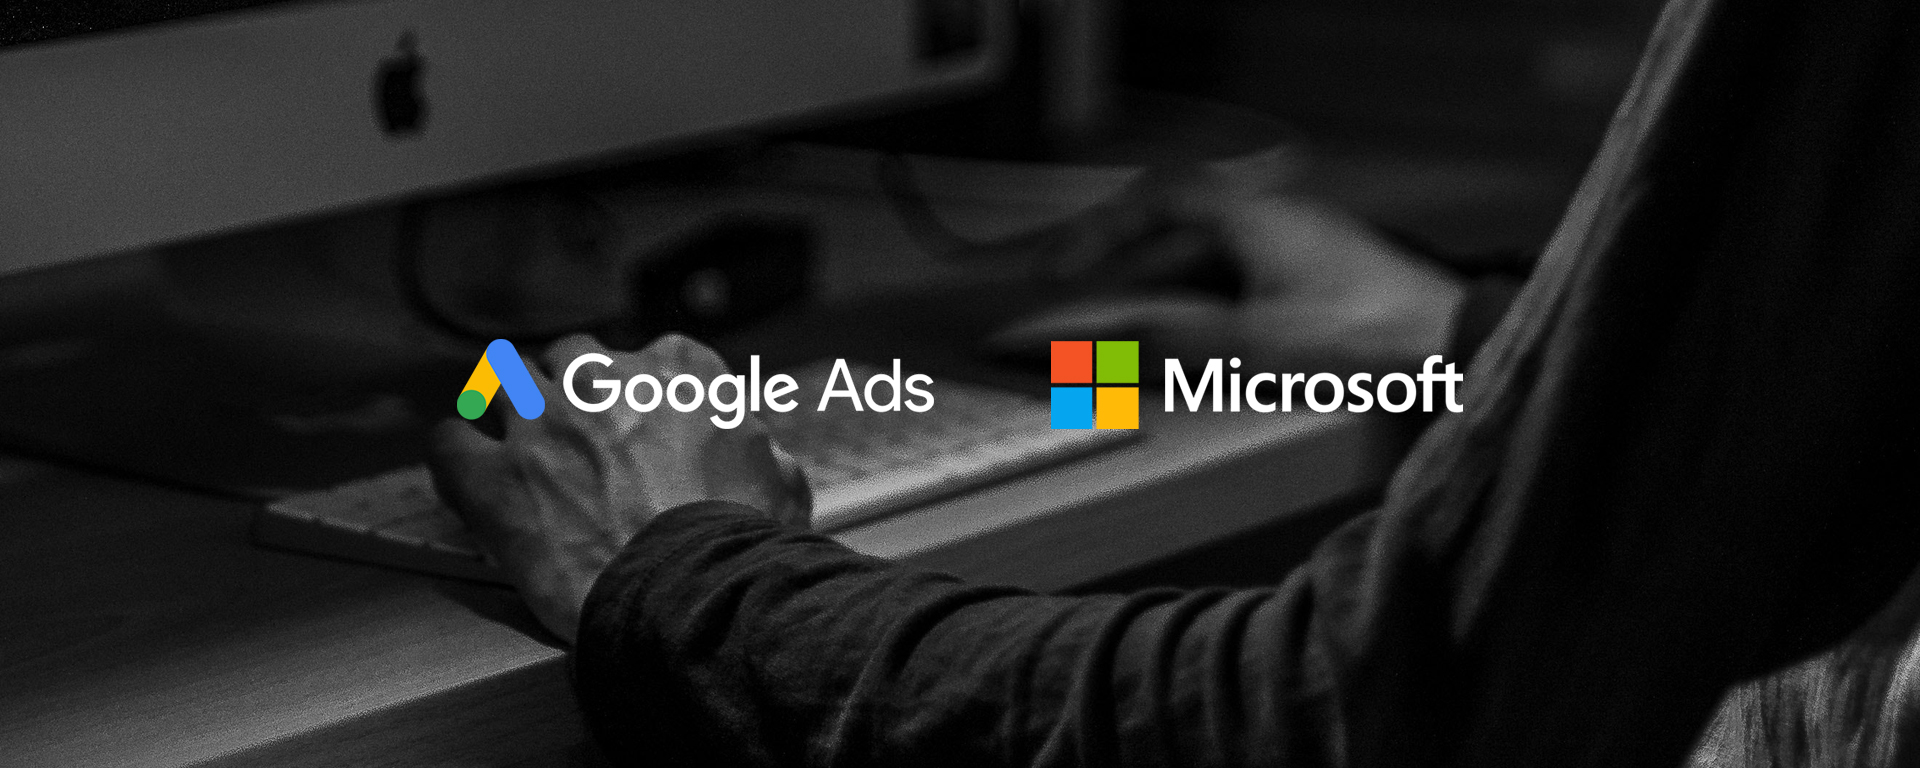 Microsoft Ads Follows Google by Expanding 'Phrase Match' Features